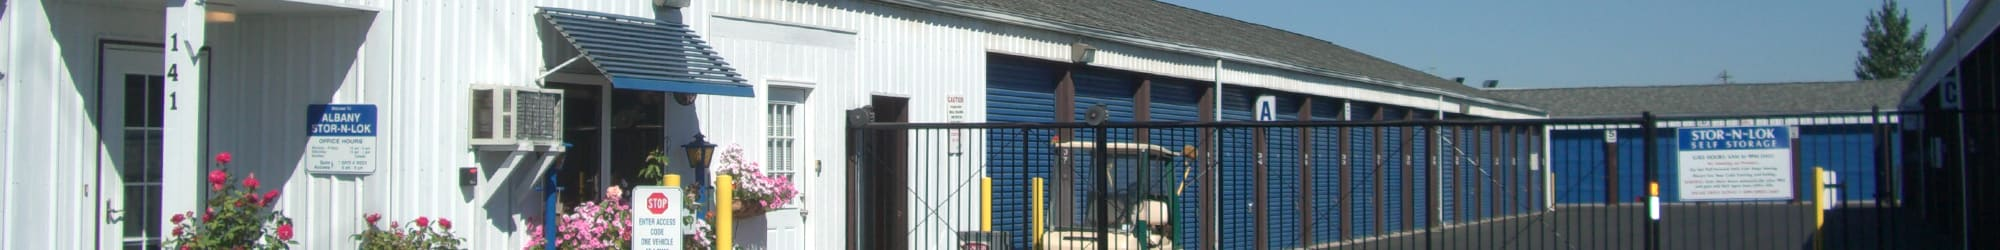 Storage Unit Size guide for self storage in Albany, OR